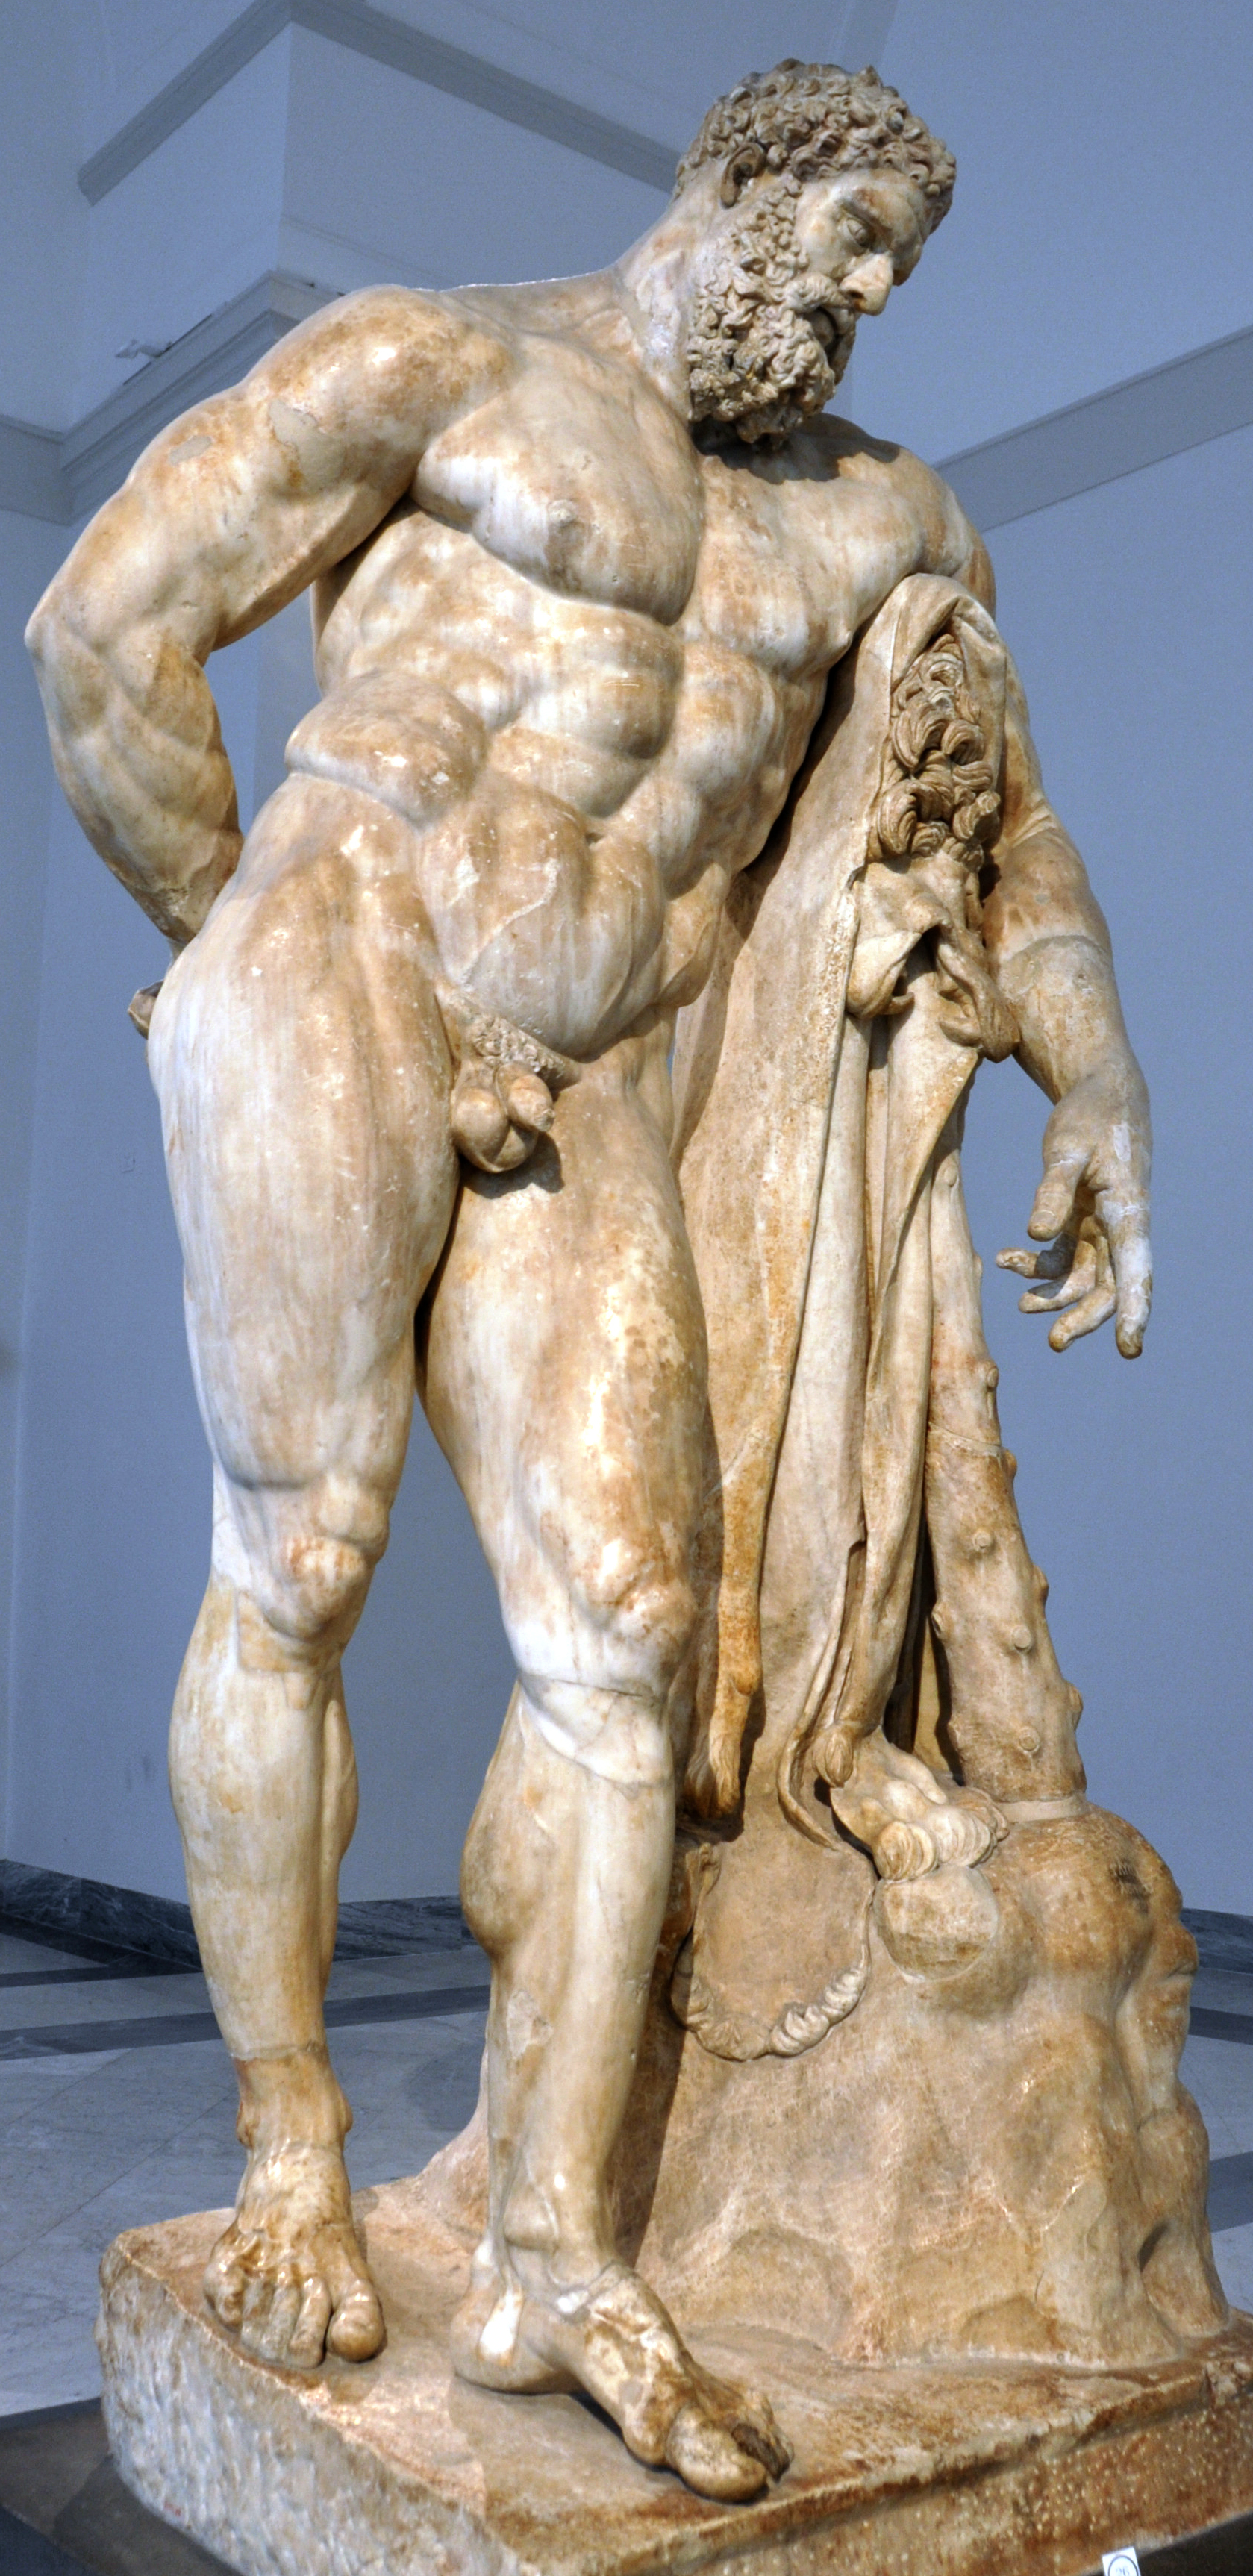 https://upload.wikimedia.org/wikipedia/commons/a/a9/Hercules_Farnese_3637104088_9c95d7fe3c_b.jpg